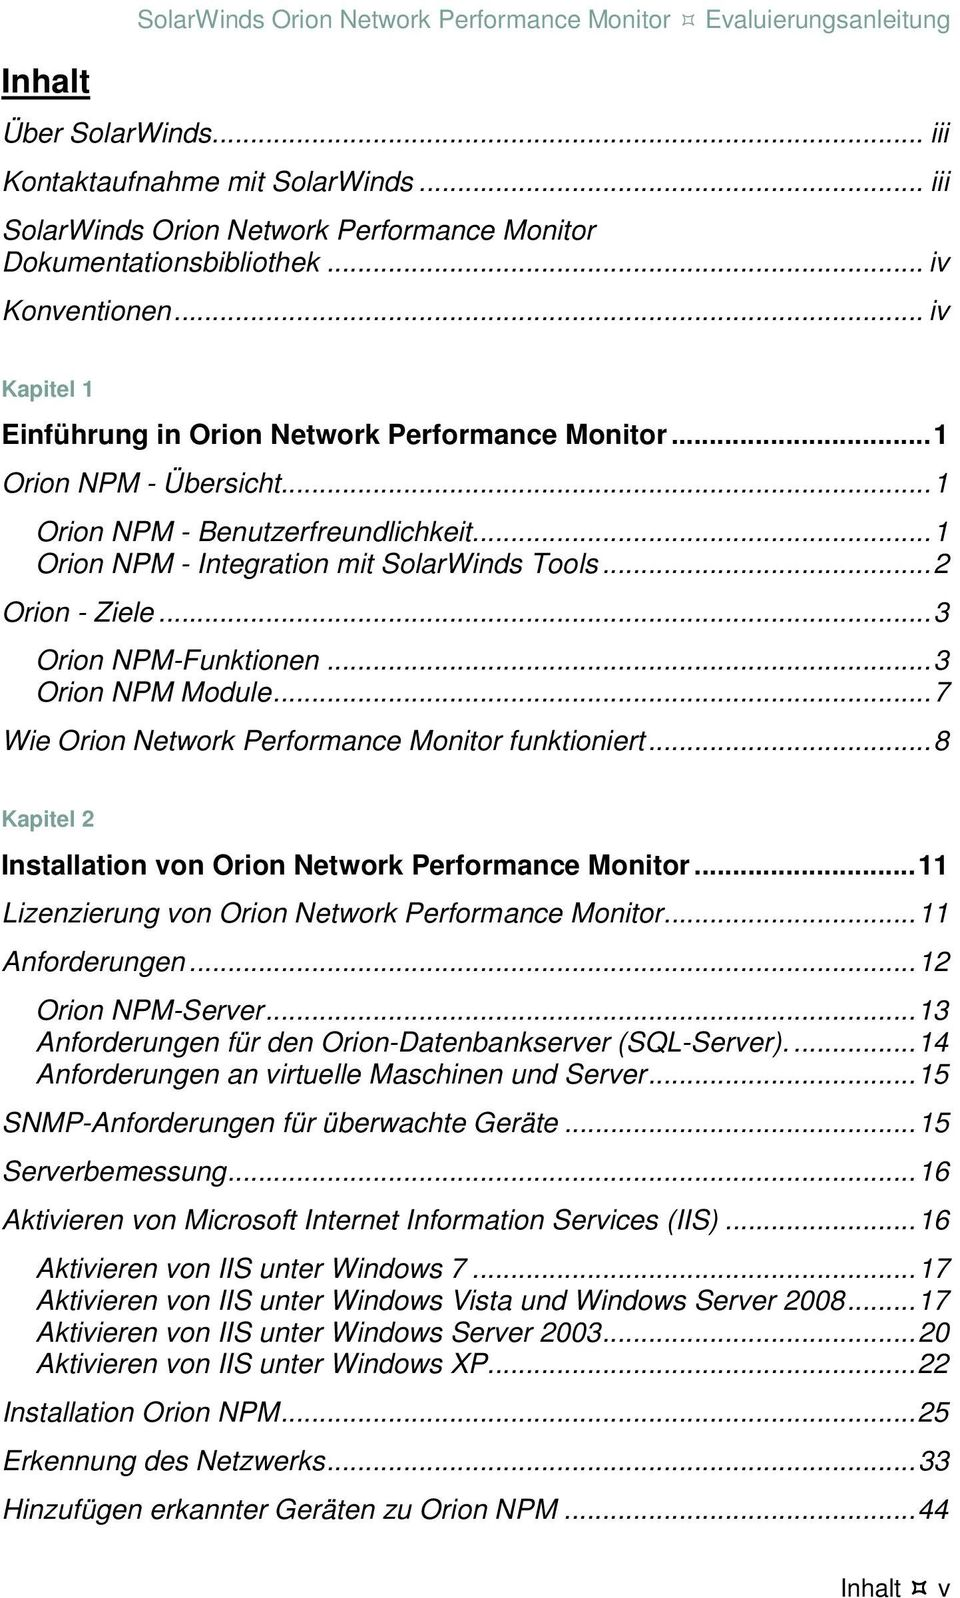 .. 1 Orion NPM - Benutzerfreundlichkeit... 1 Orion NPM - Integration mit SolarWinds Tools... 2 Orion - Ziele... 3 Orion NPM-Funktionen... 3 Orion NPM Module.